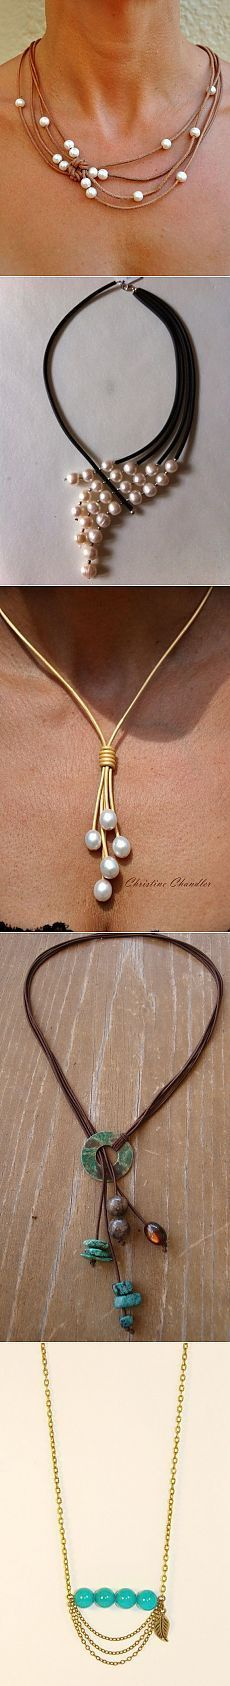 Fashion pearls (compilation and bonus) / Jewellery and bijouterie / SECOND STREET - silver jewellery online, jewellery online websites, engagement jewelry *sponsored https://www.pinterest.com/jewelry_yes/ https://www.pinterest.com/explore/jewellery/ https://www.pinterest.com/jewelry_yes/womens-jewelry/ http://www.neimanmarcus.com/Jewelry-Accessories/Jewelry/All-Jewelry/cat50910737/c.cat